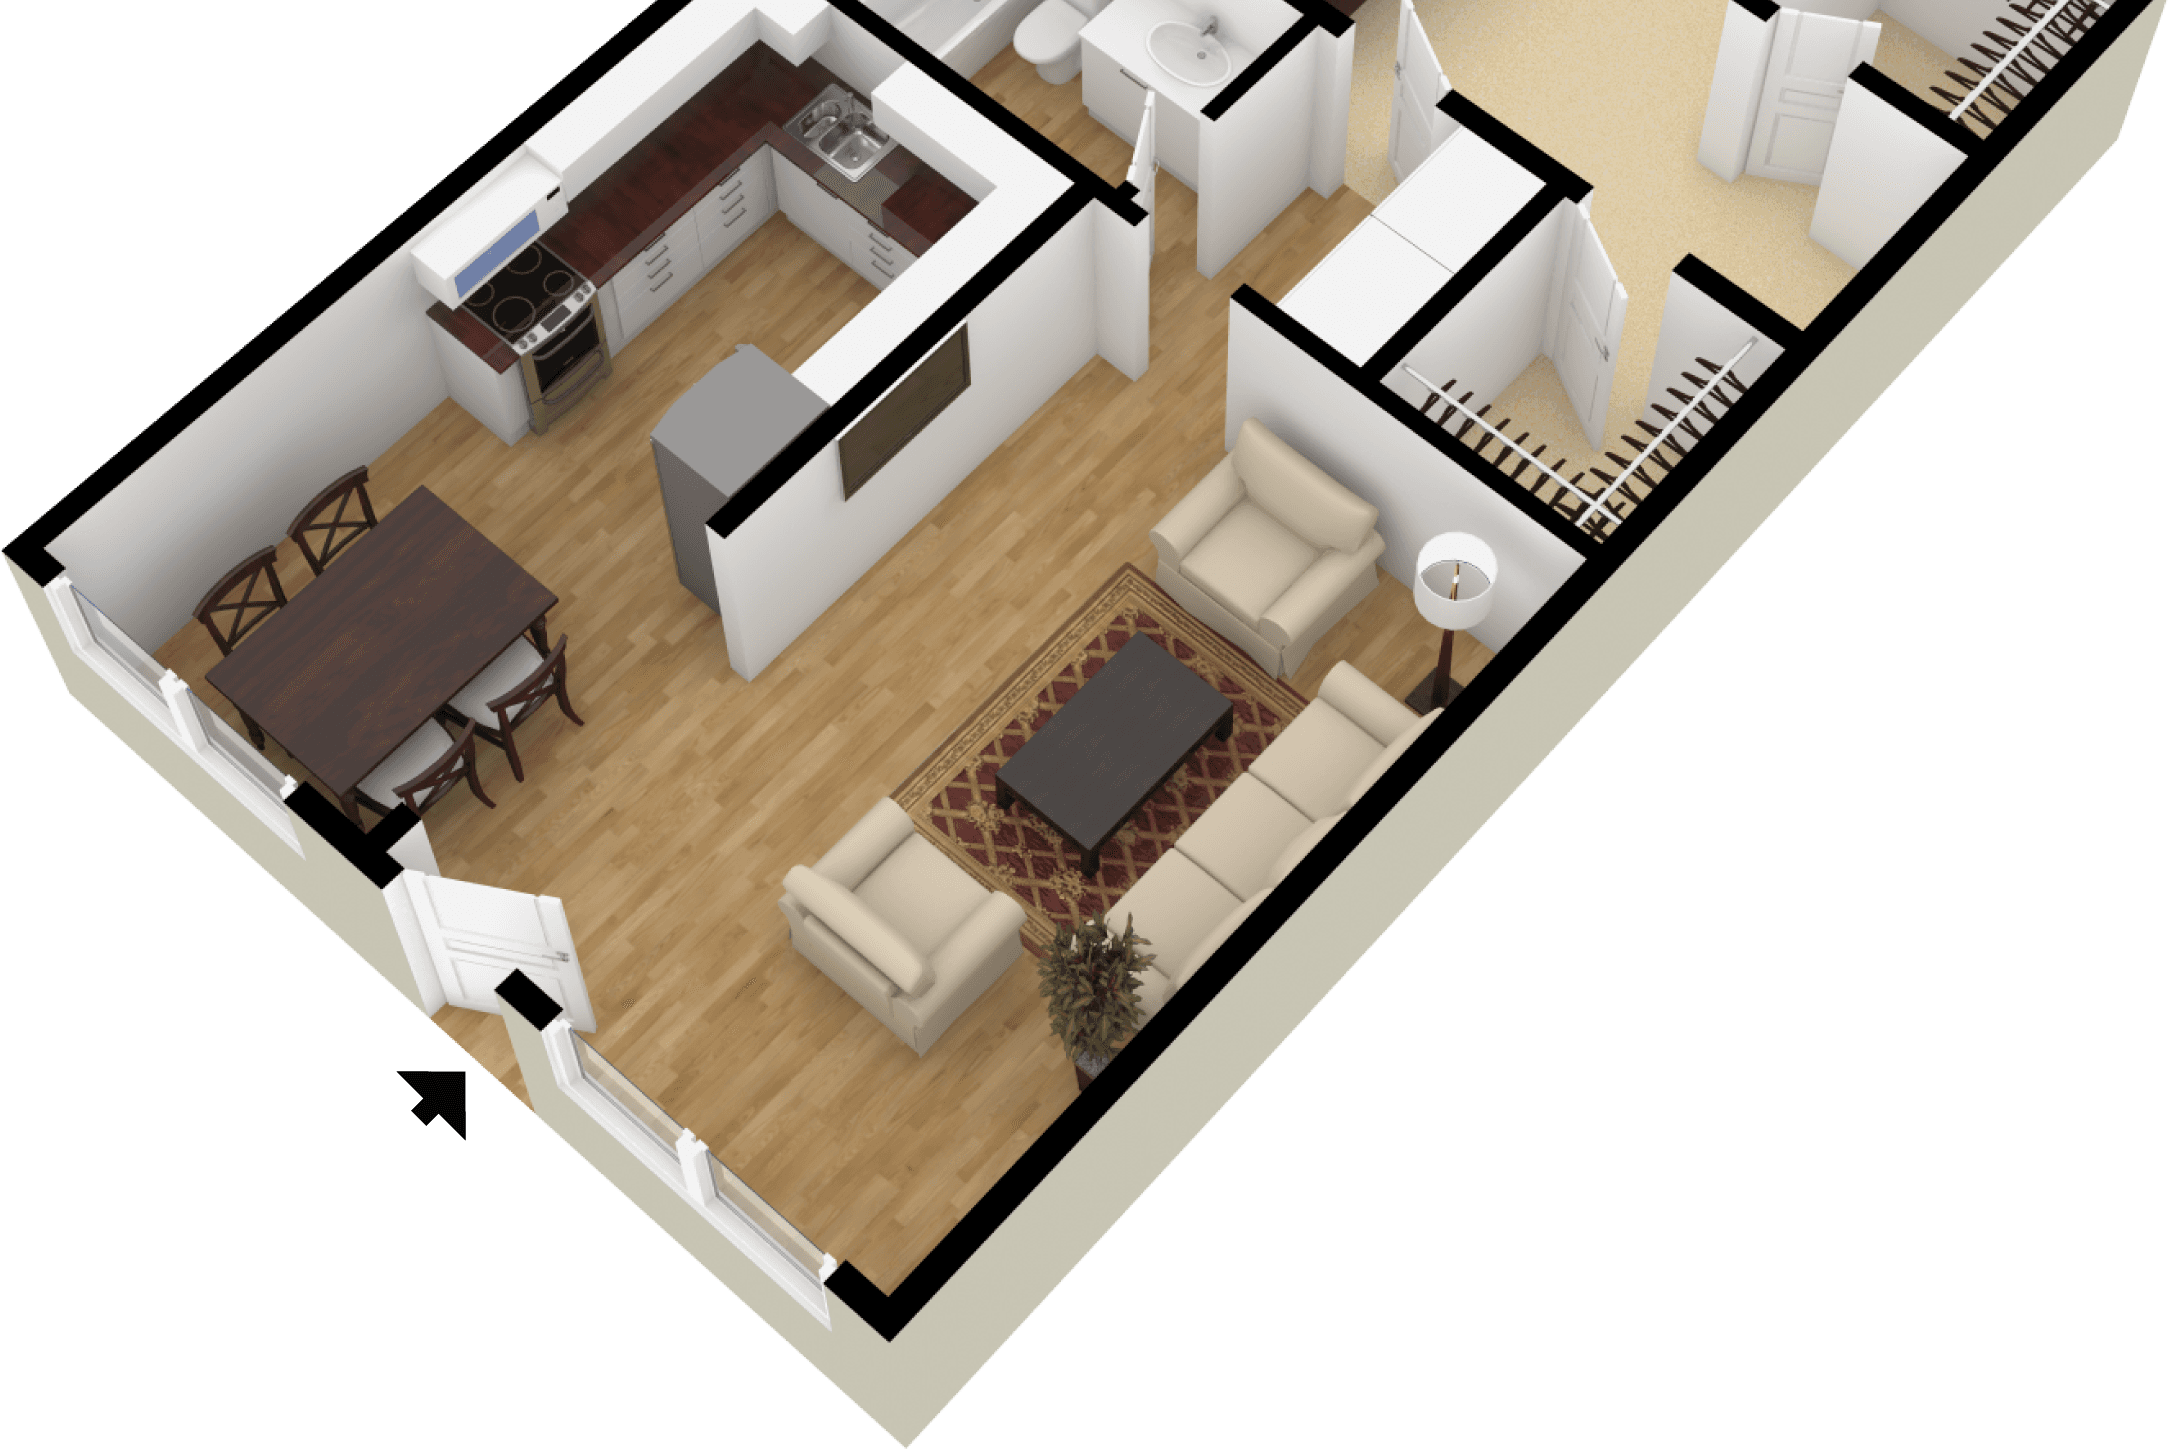 Doll House View of Floor Plan